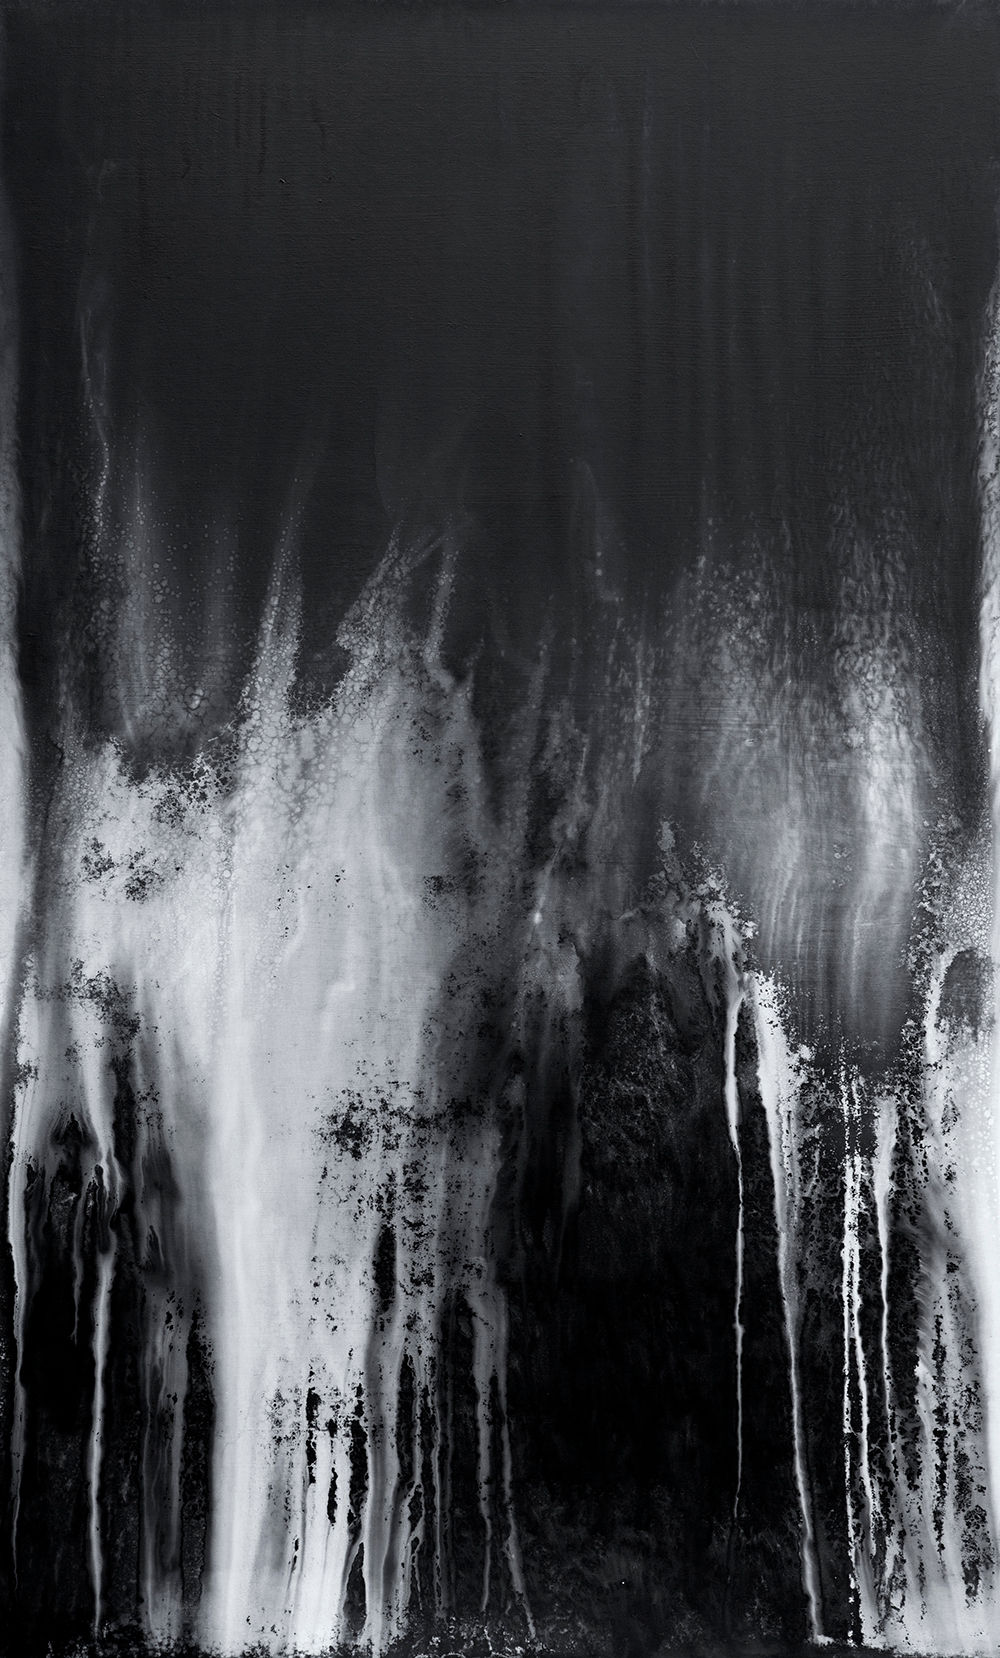 Waterscape 1311, 164x100cm, Graphite, sumi-ink, water-drawing on Mulberry paper, 2013